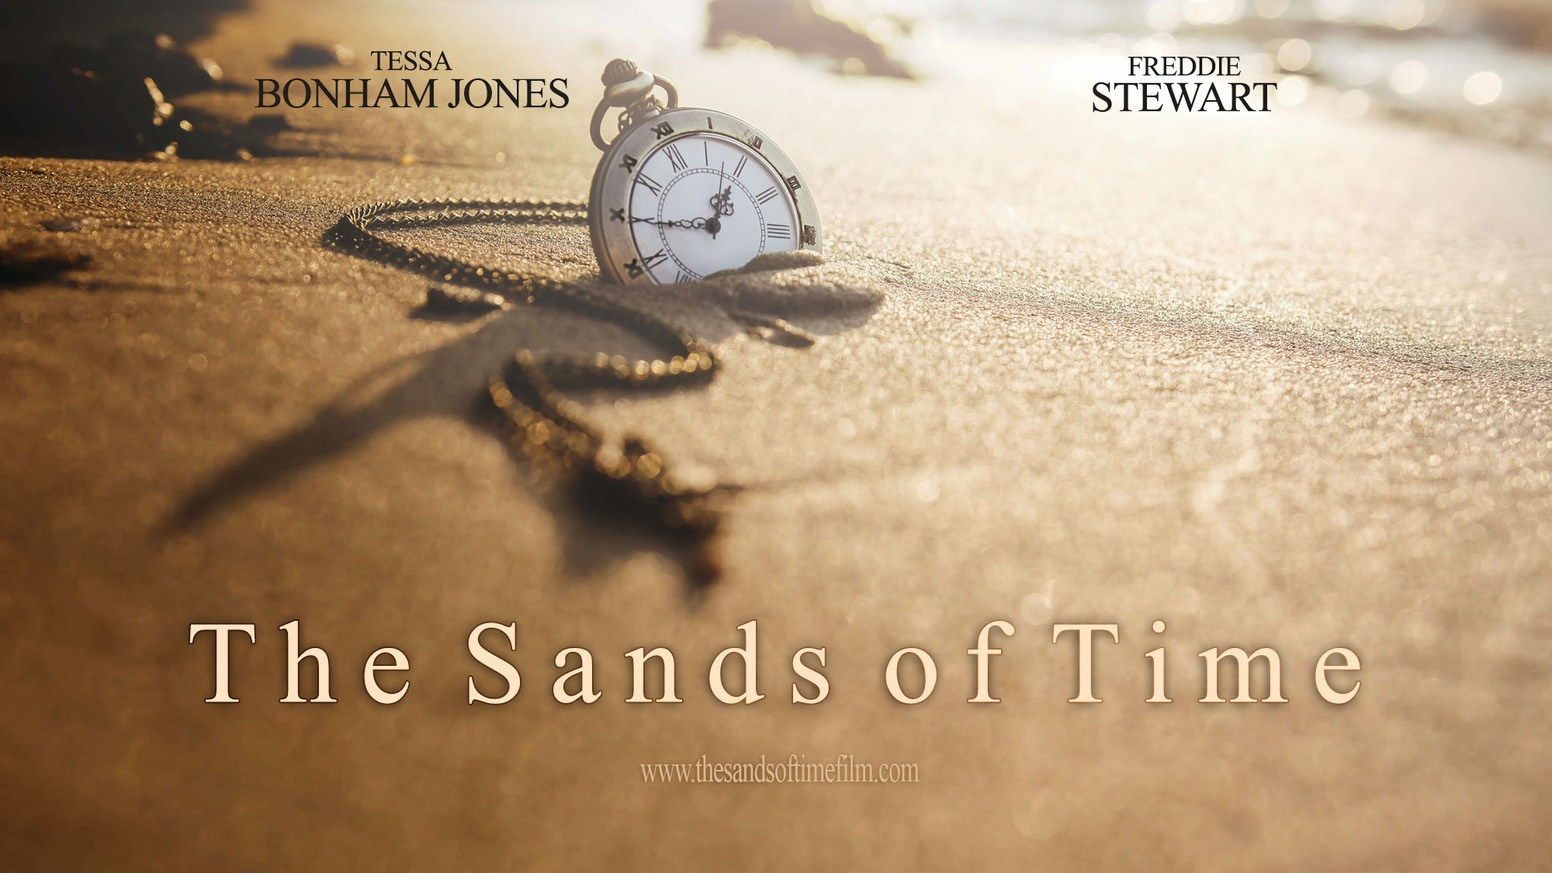 A Time Portal in the Sands Brings a Young Couple Together   Team of Emmy® and BAFTA Winners